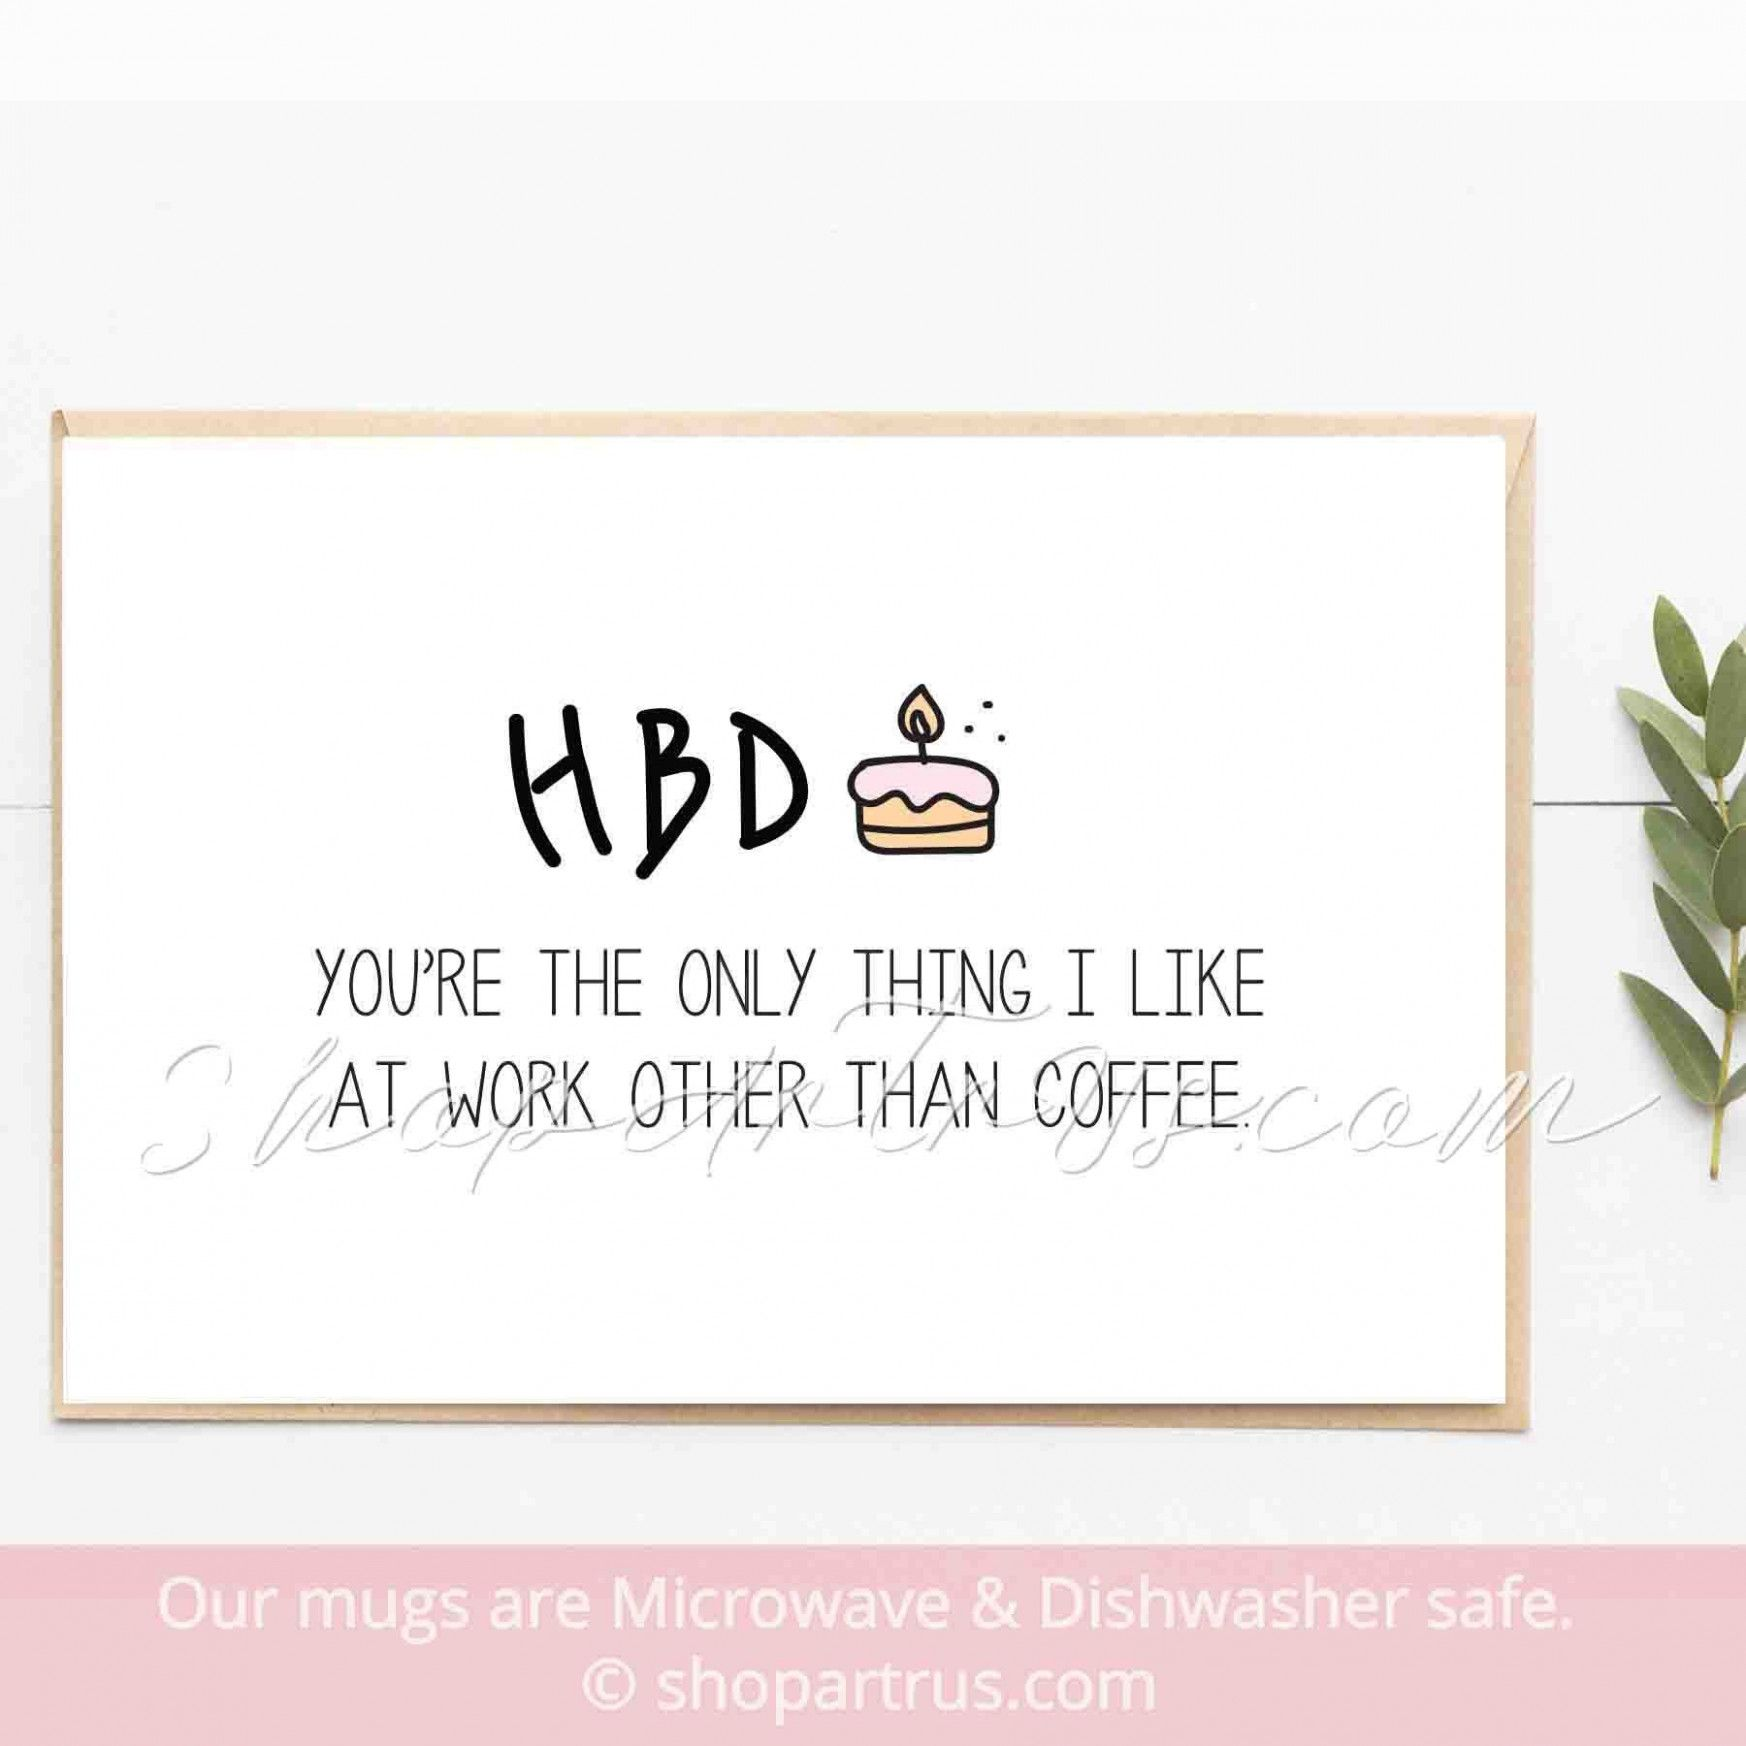 The Office Birthday Card Quotes The Office Birthday Card Quotes